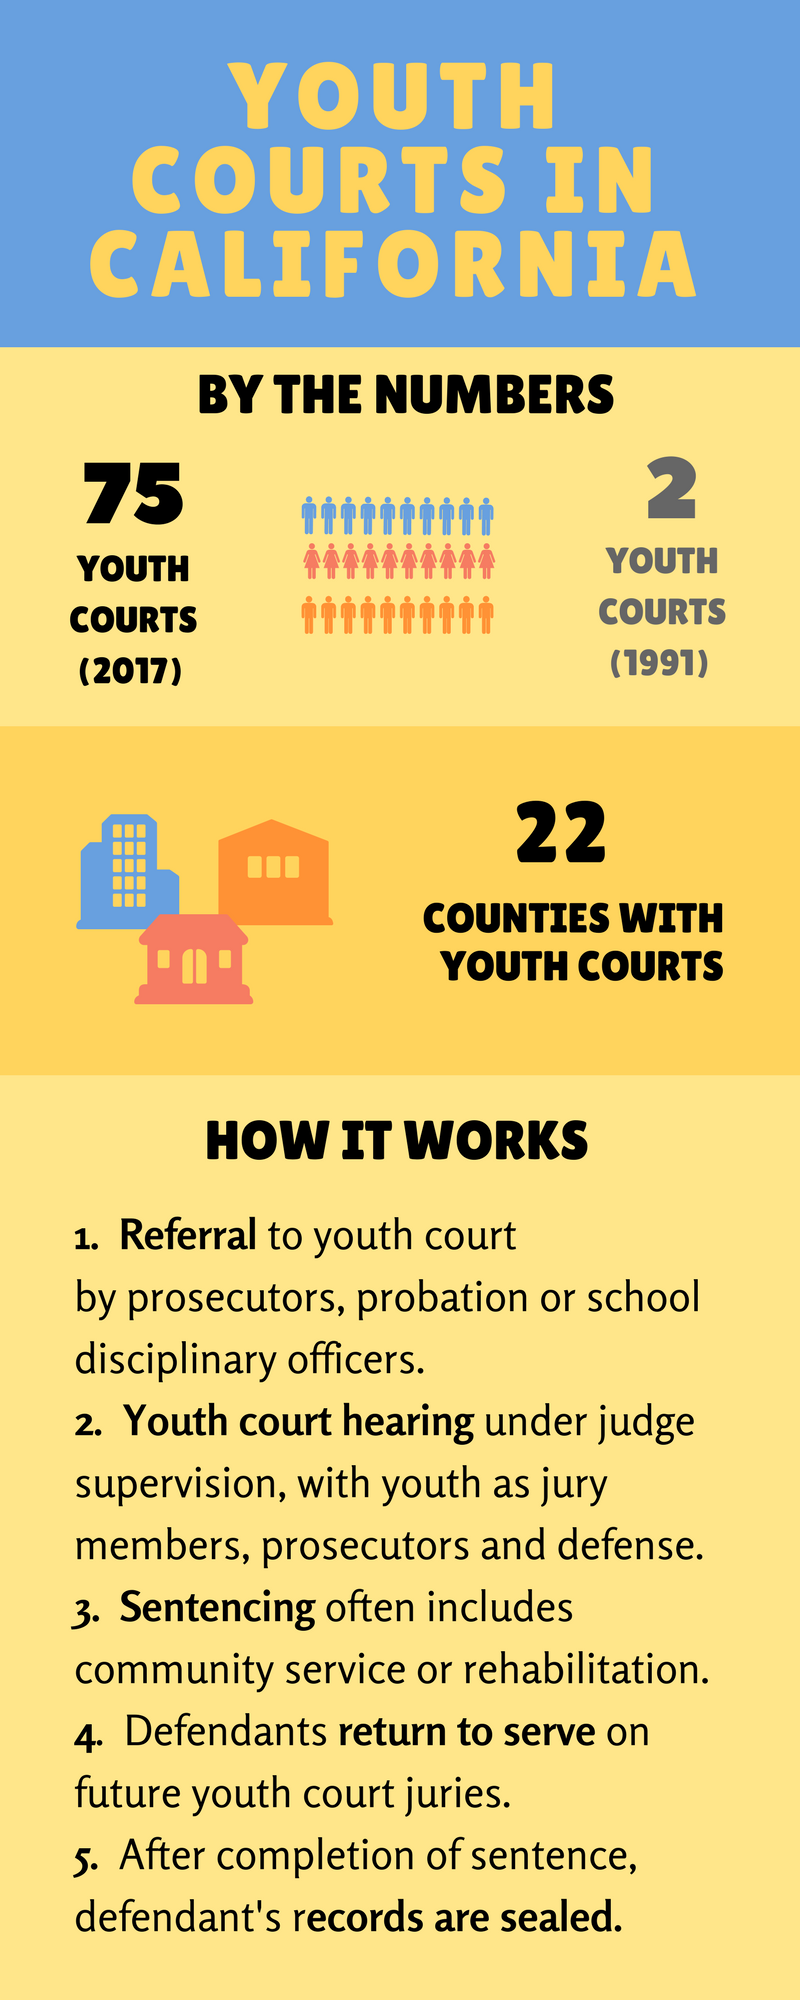 Youth Courts in California 2